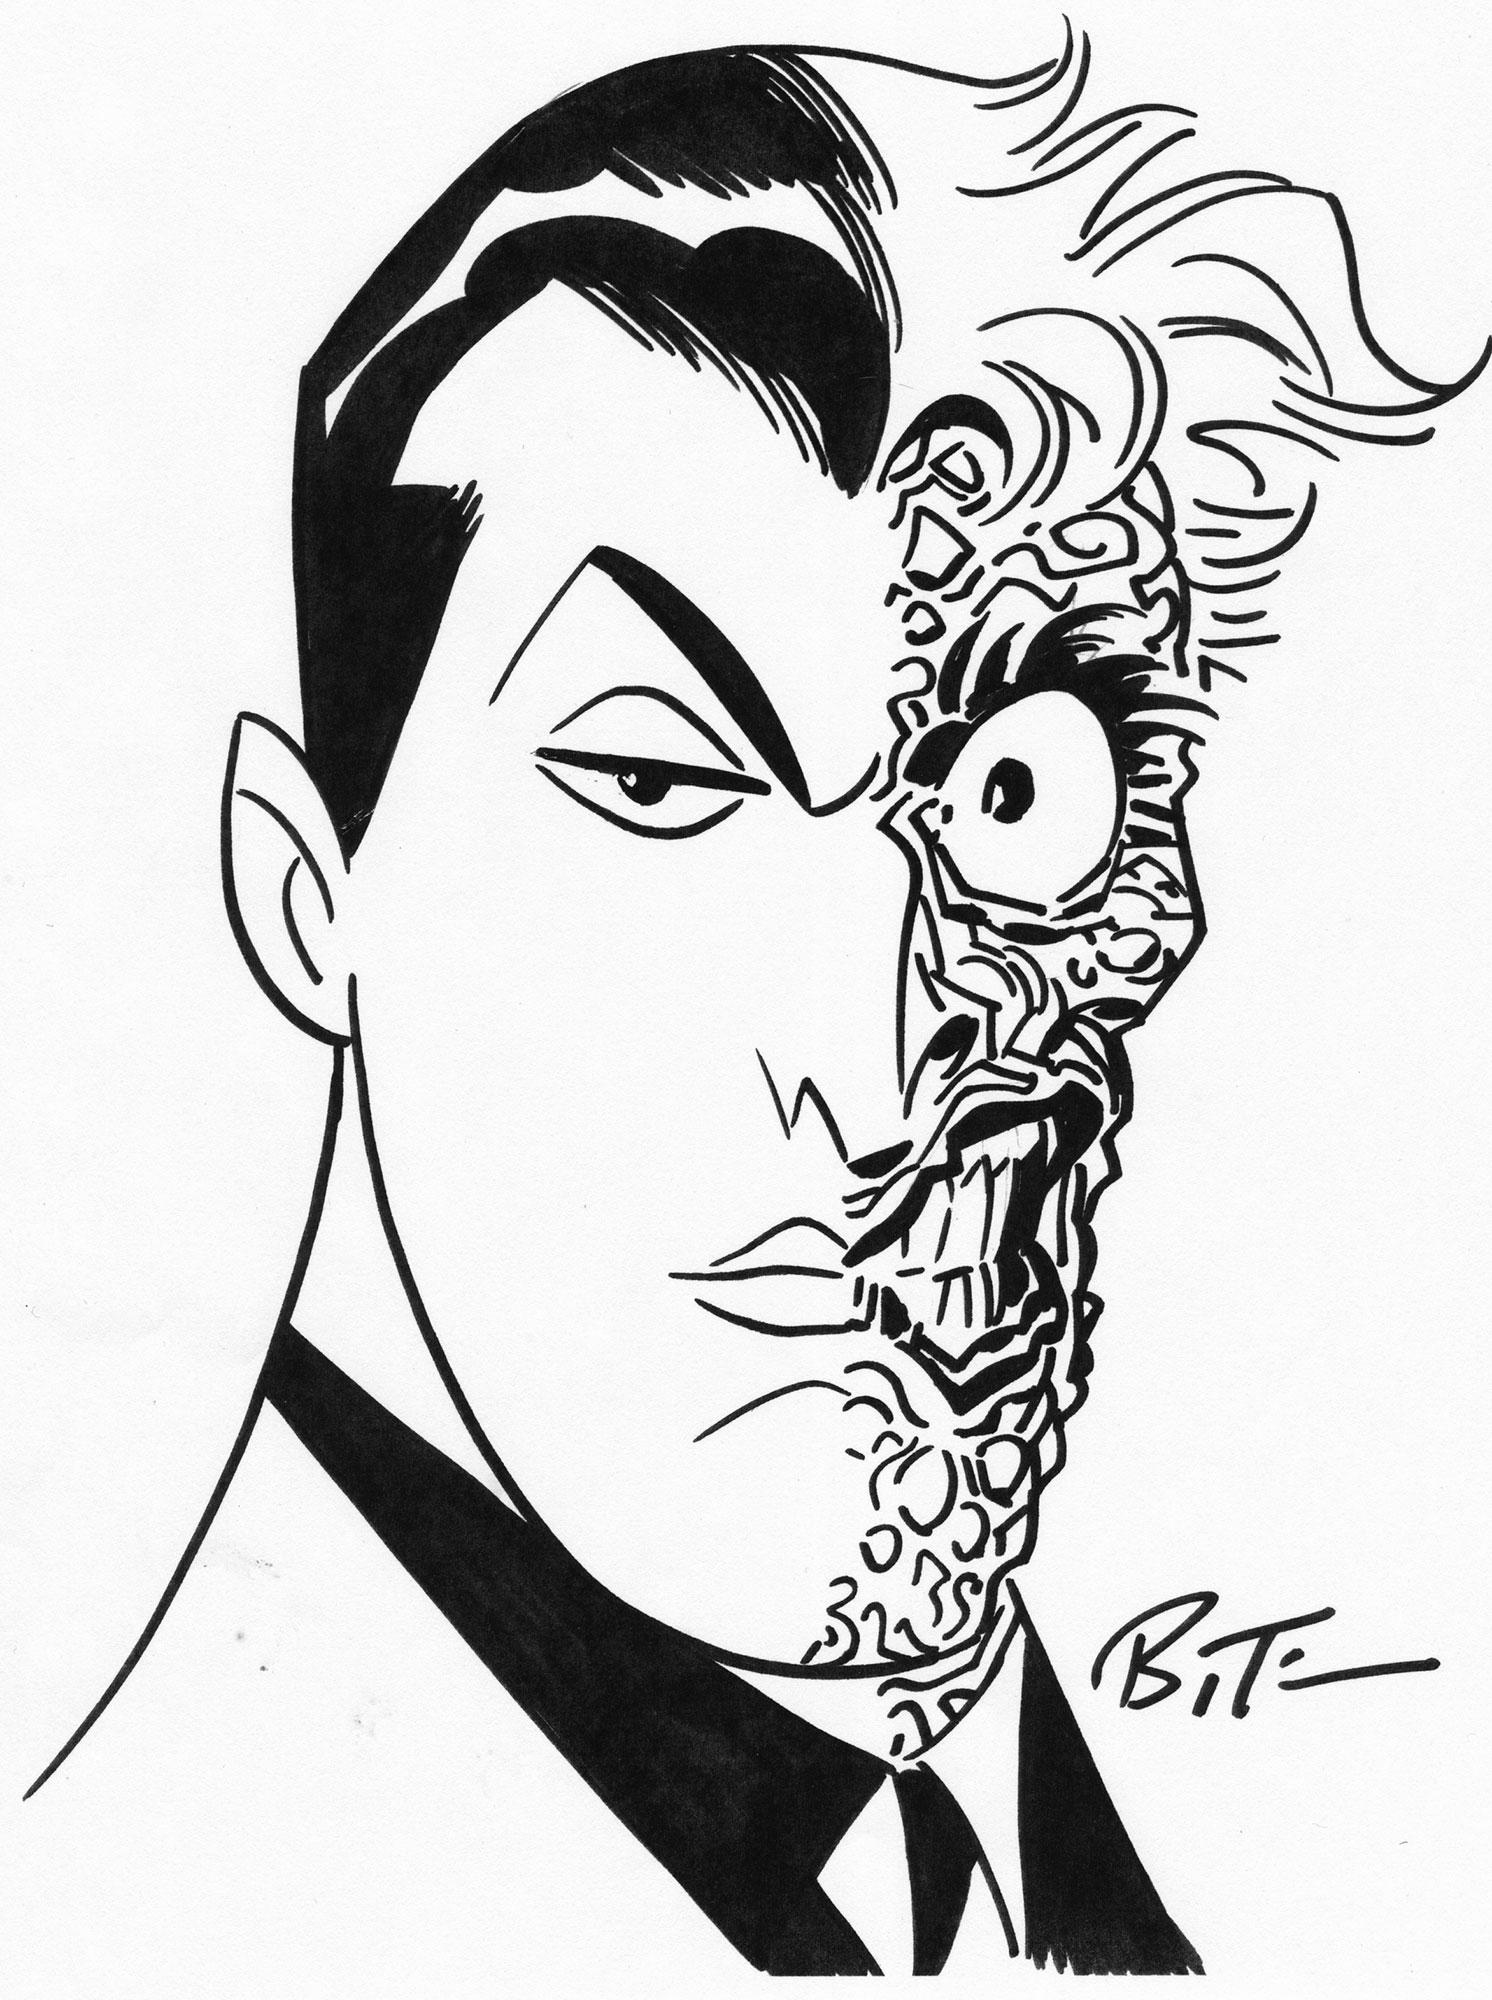 bruce timm 2016 two face drawing Art Skin Care original sketch artwork by acclaimed animated artist bruce timm of batman s twisted nemesis harvey dent a k a two face pleted at the san diego icon